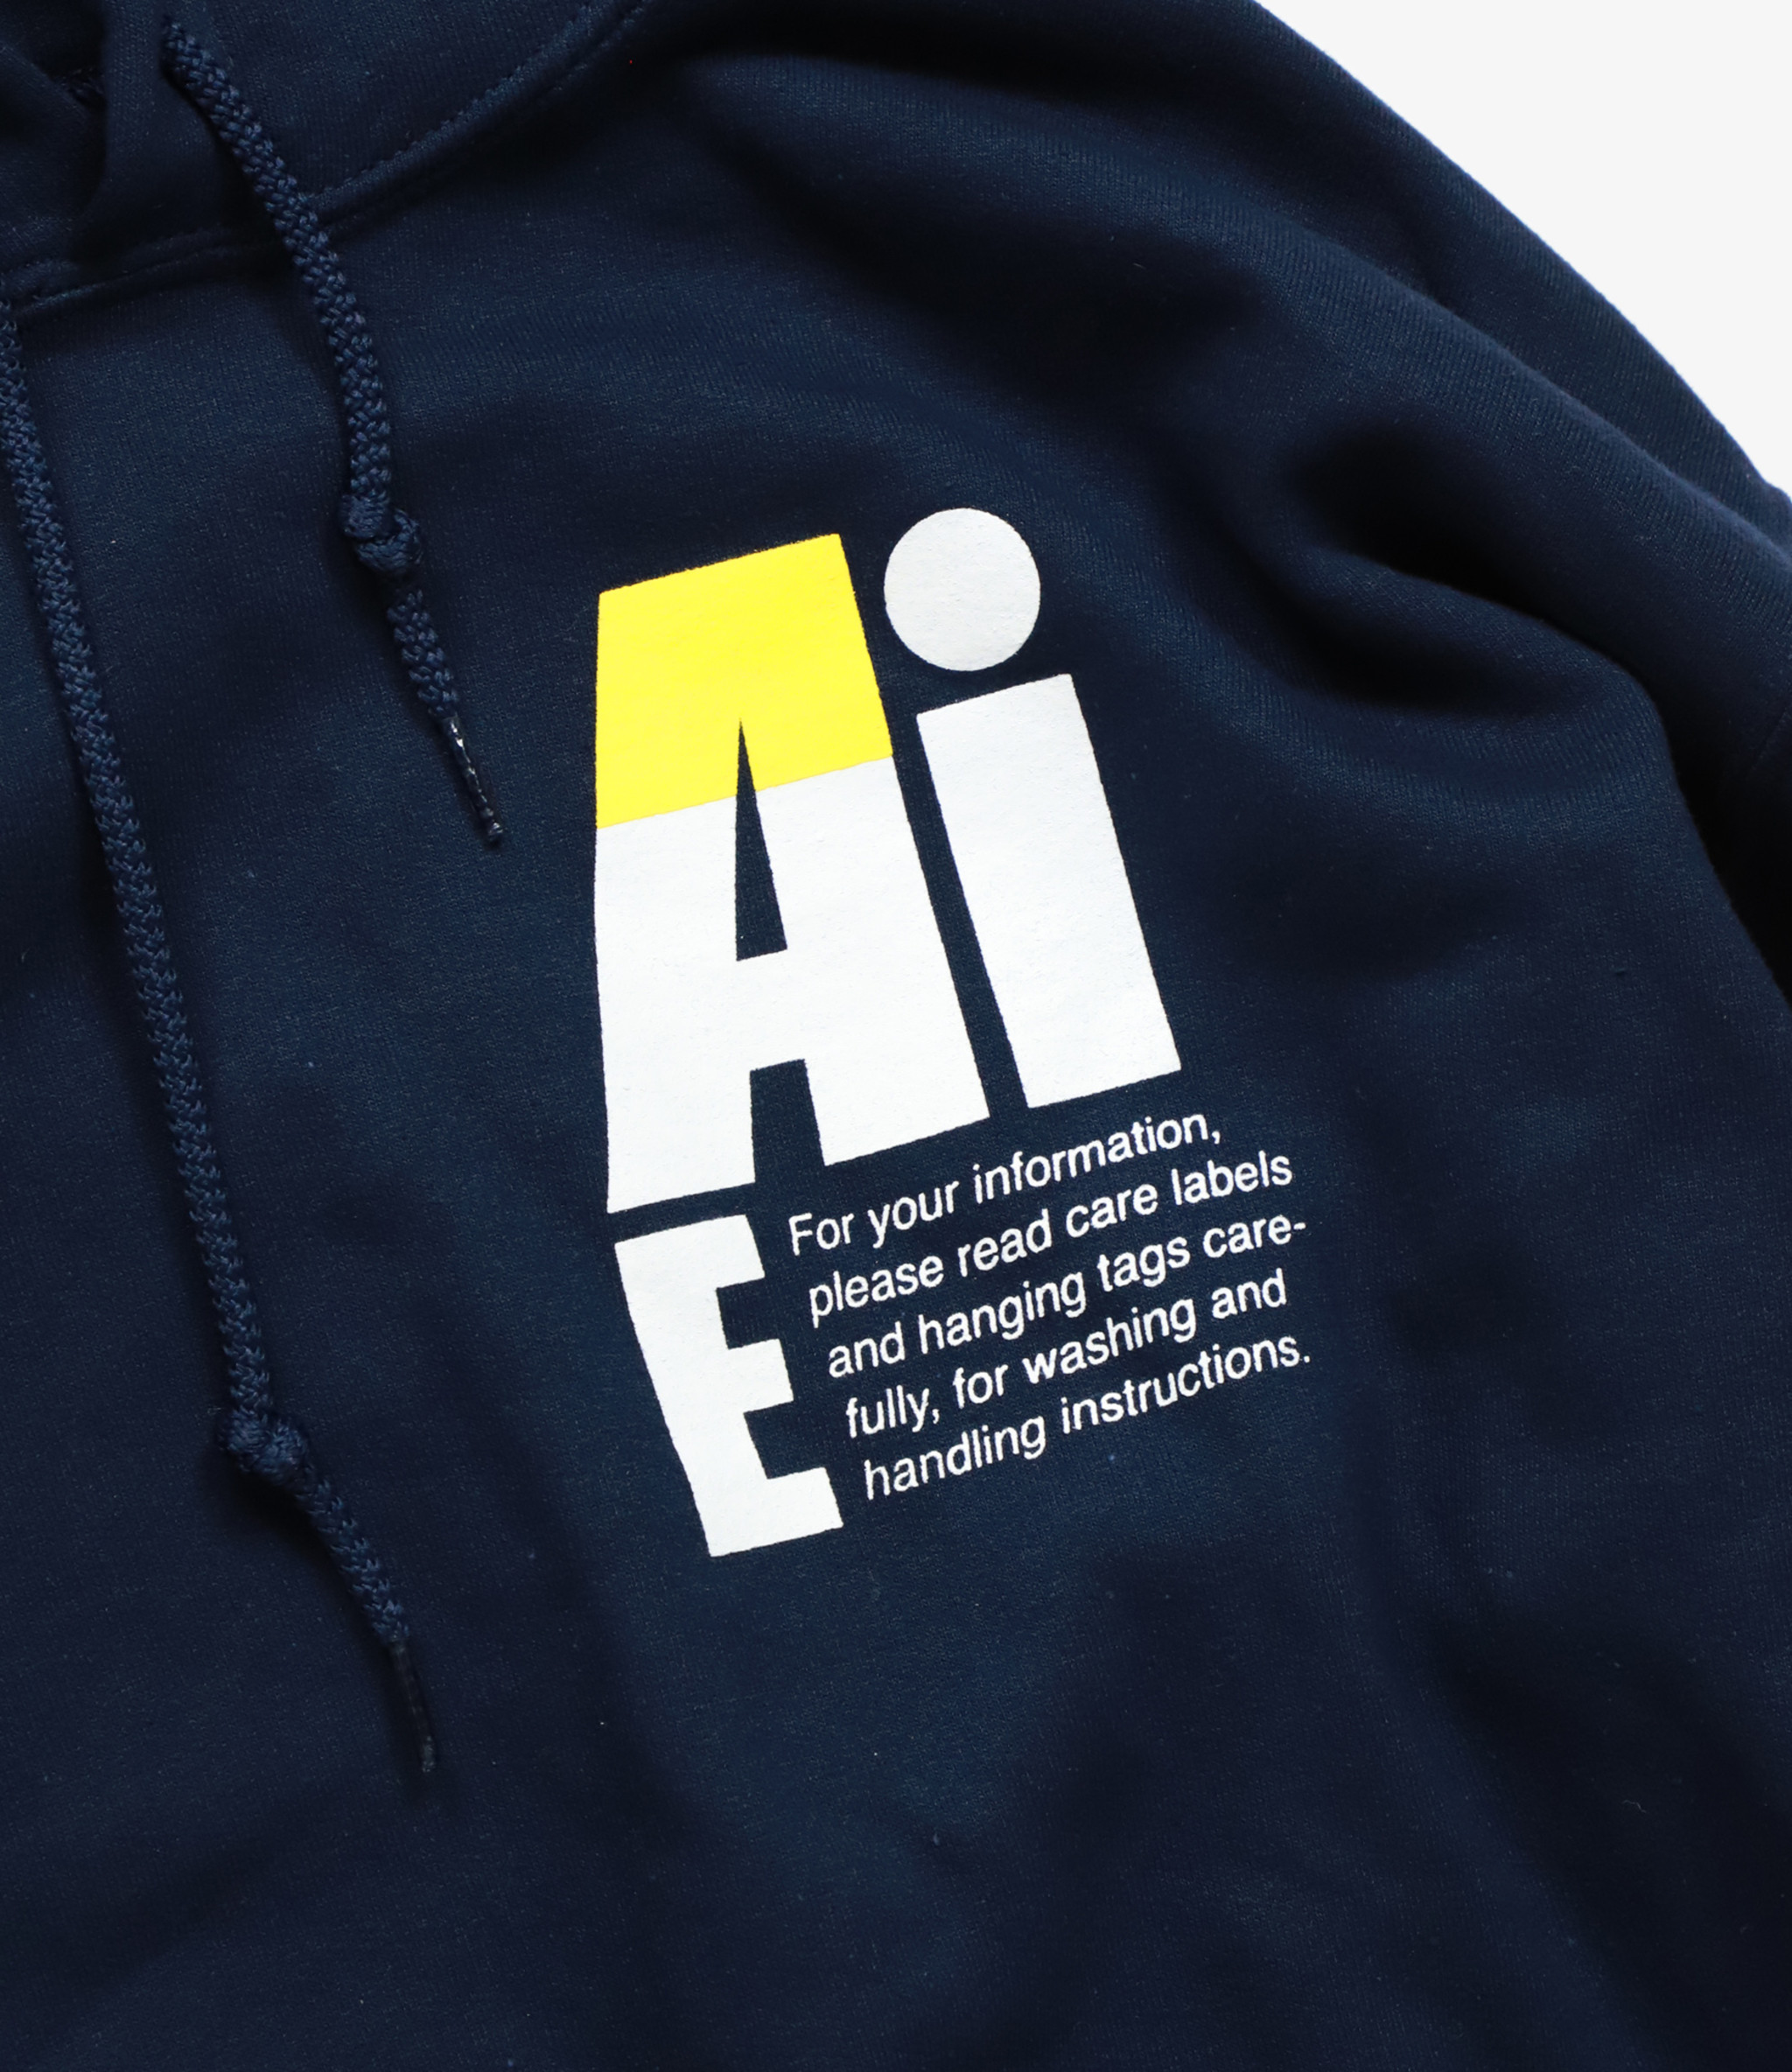 AïE Printed Hoody - Navy - Small AiE Logo